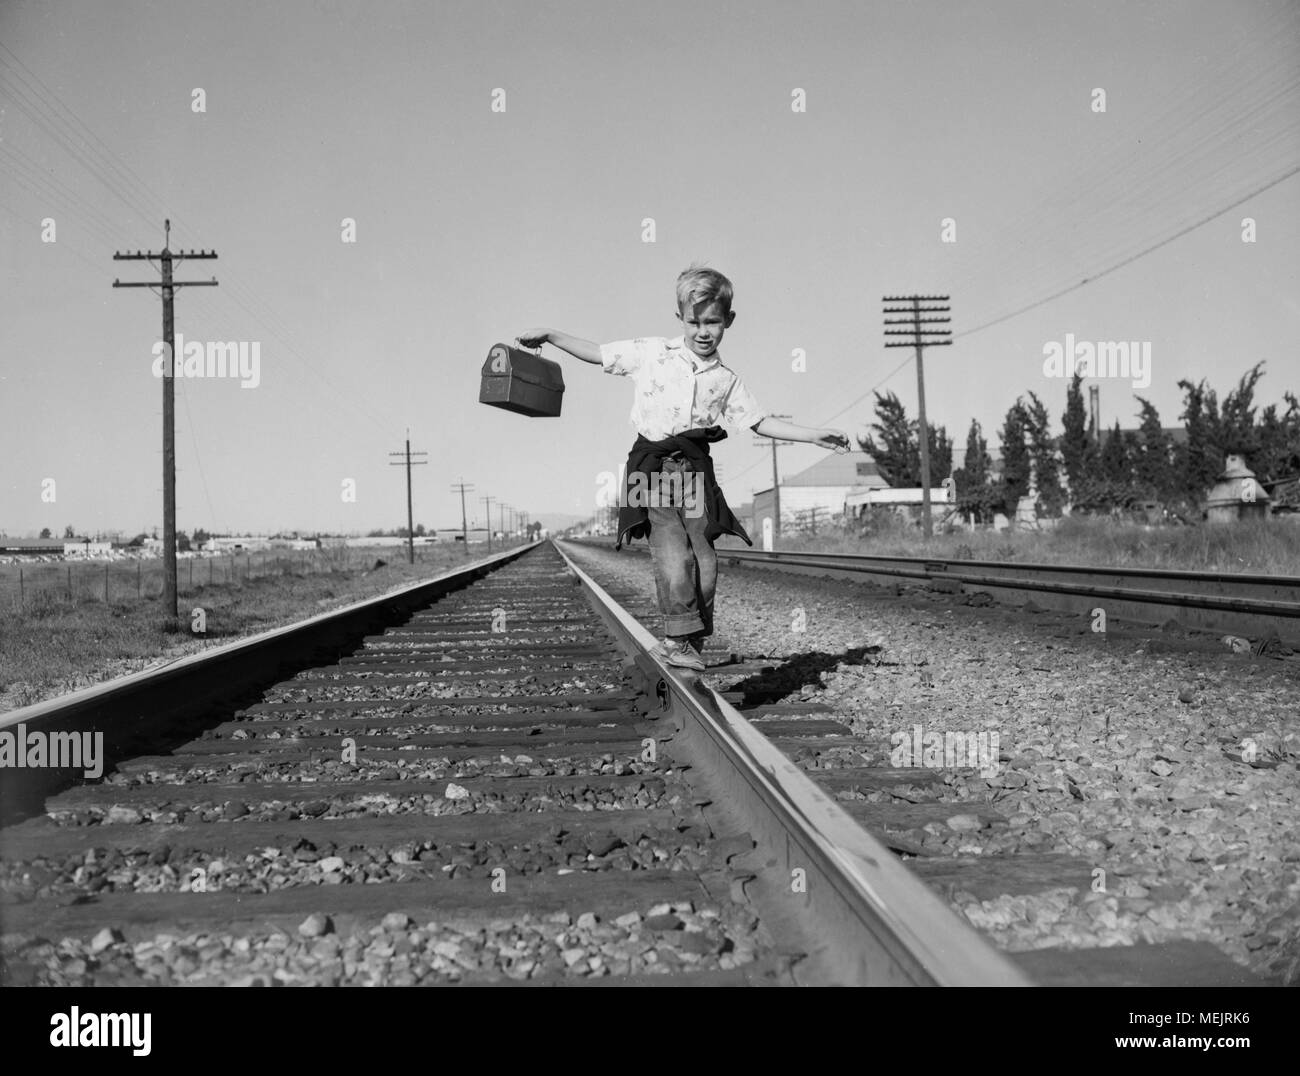 A young boy, in a dangerous habit, walks home from school balancing on railroad tracks, ca. 1964. - Stock Image